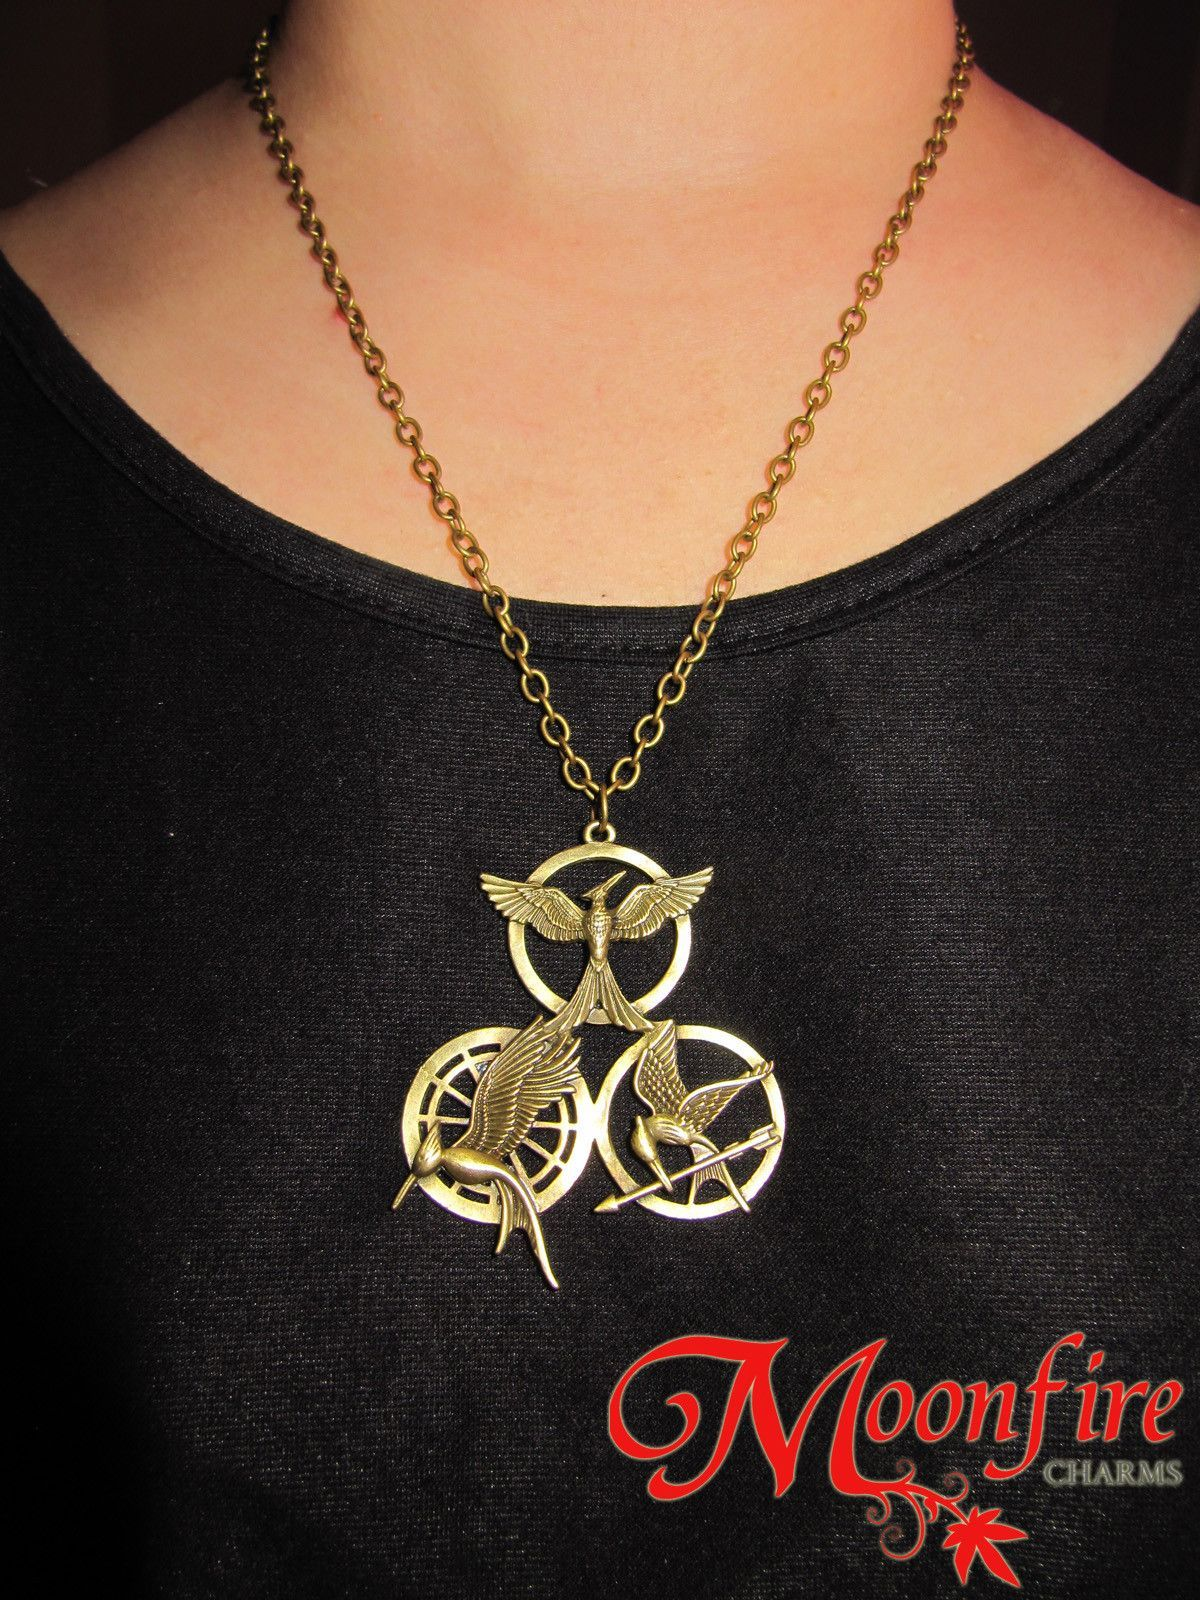 The hunger games mockingjay trio necklace moonfire charms shows the hunger games mockingjay trio necklace moonfire charms aloadofball Images